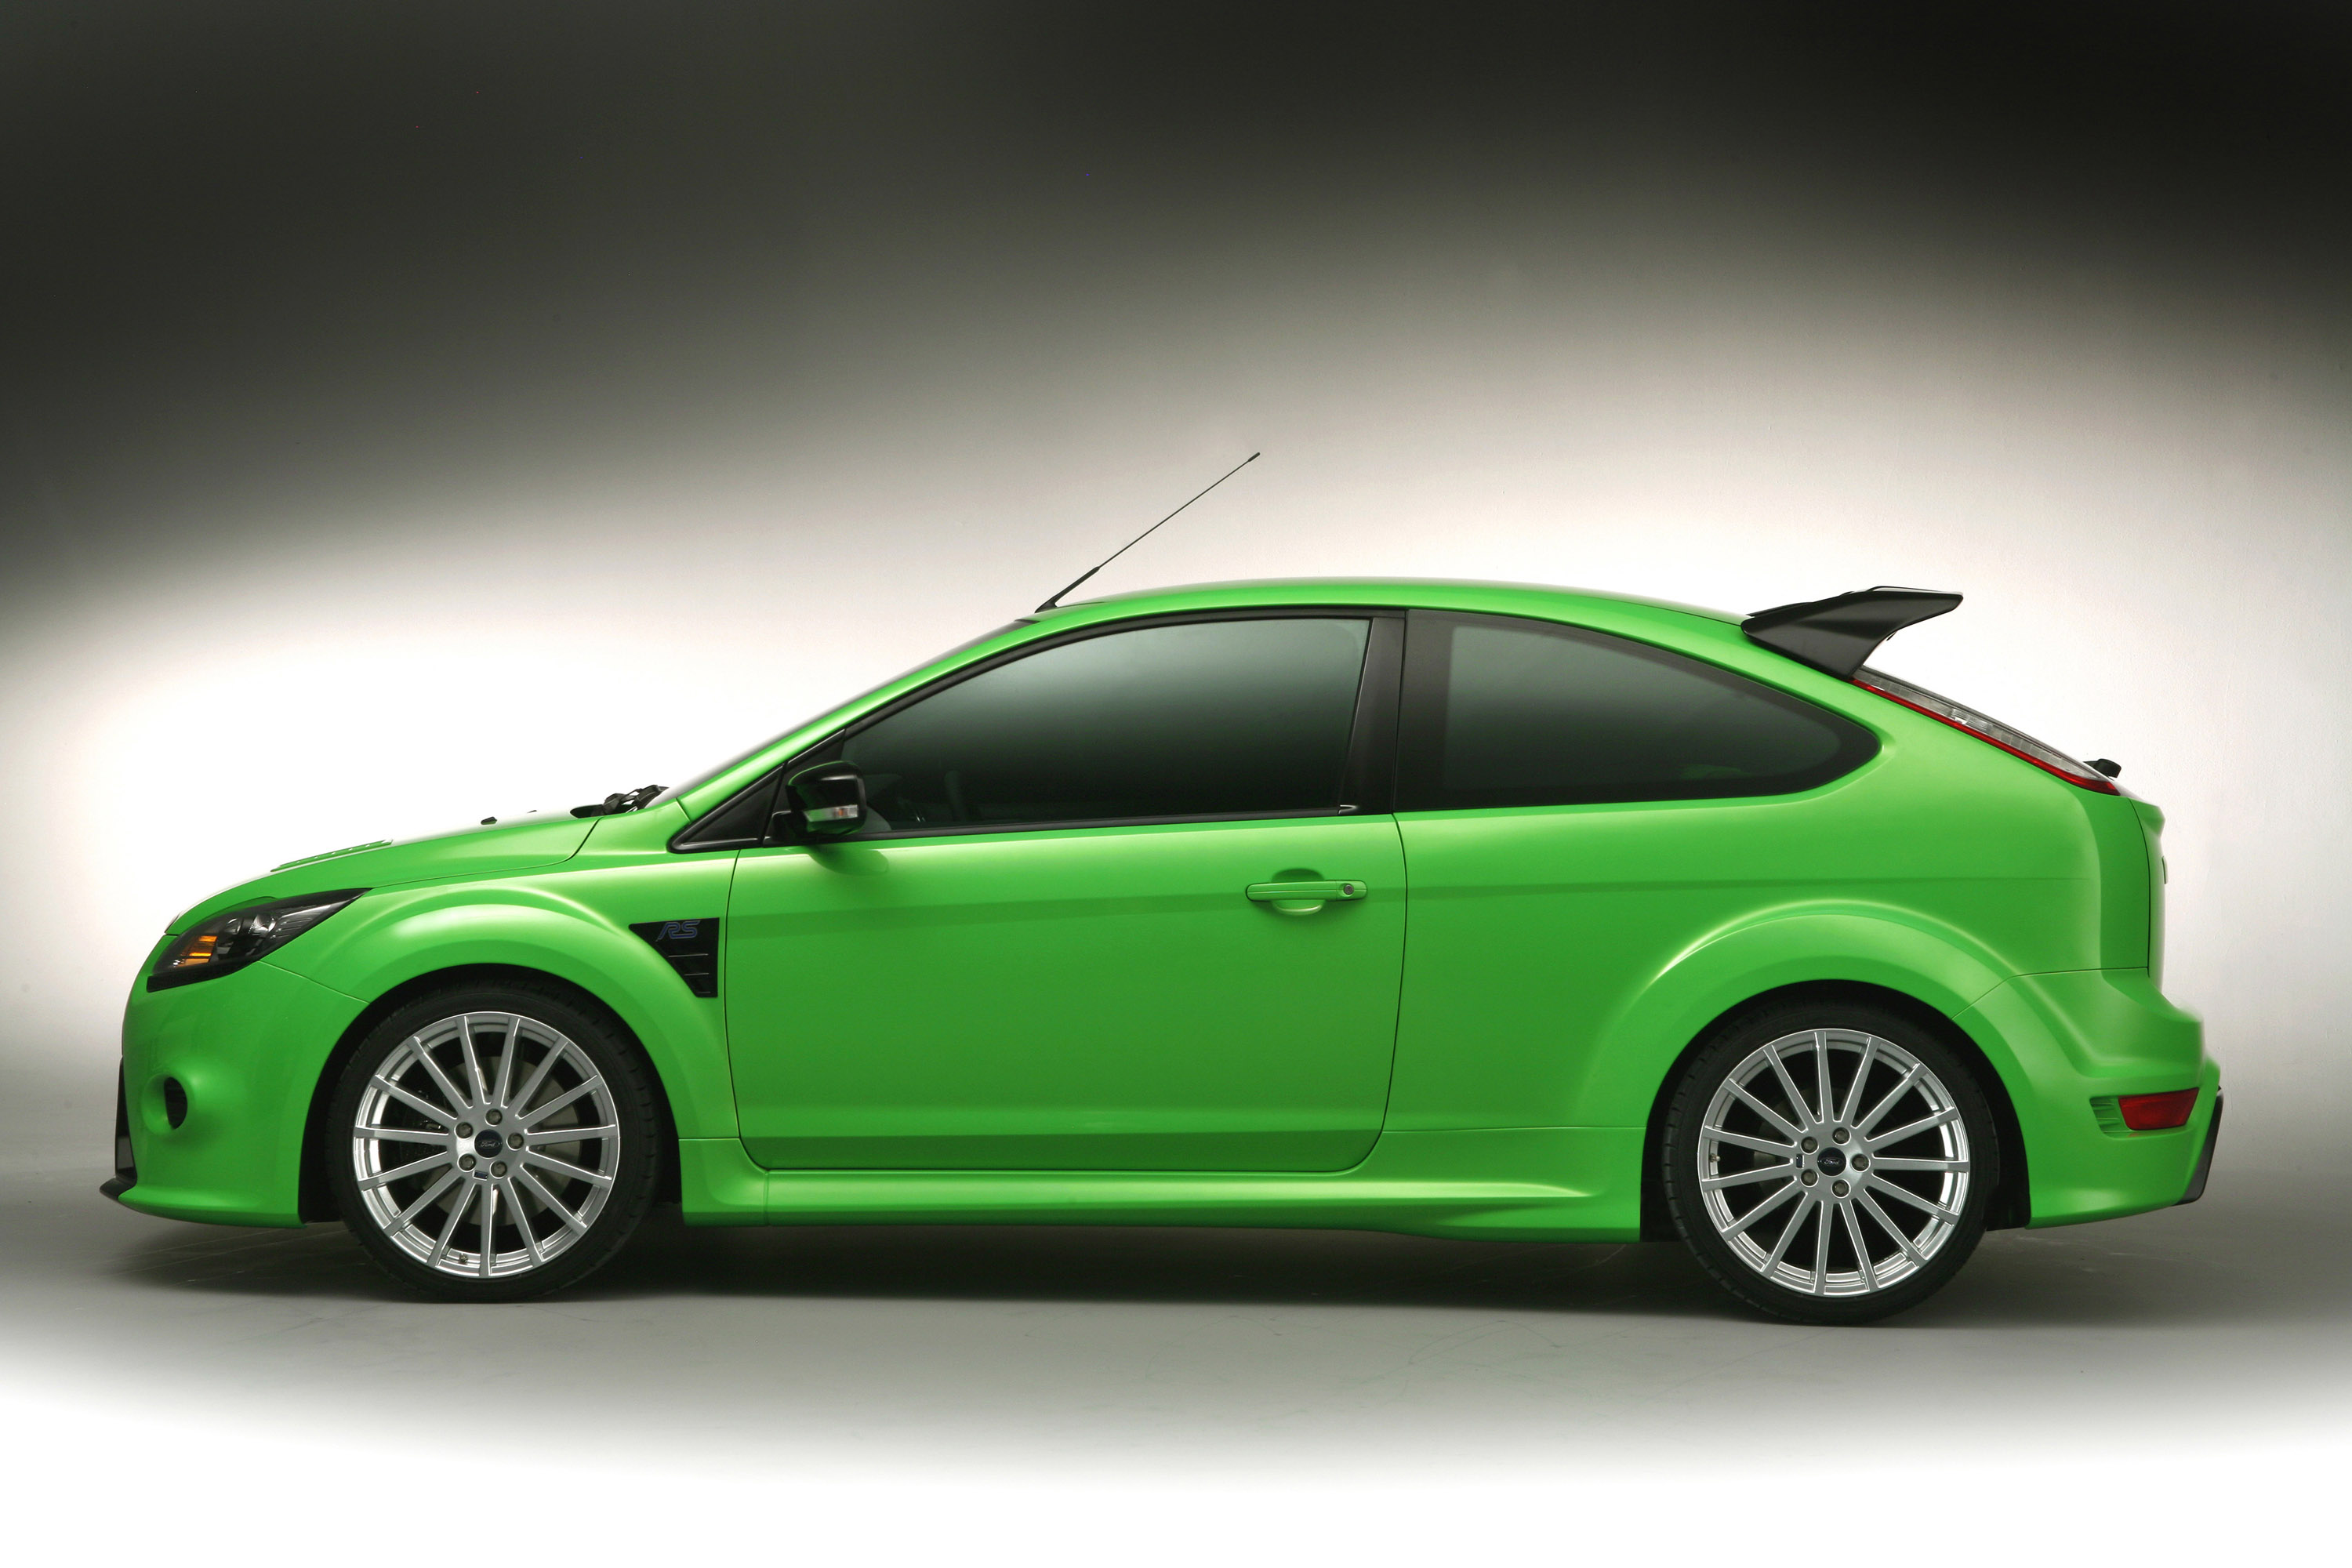 New Ford Focus Rs In Detail Engine 2000 First Generation 02 2002 2009